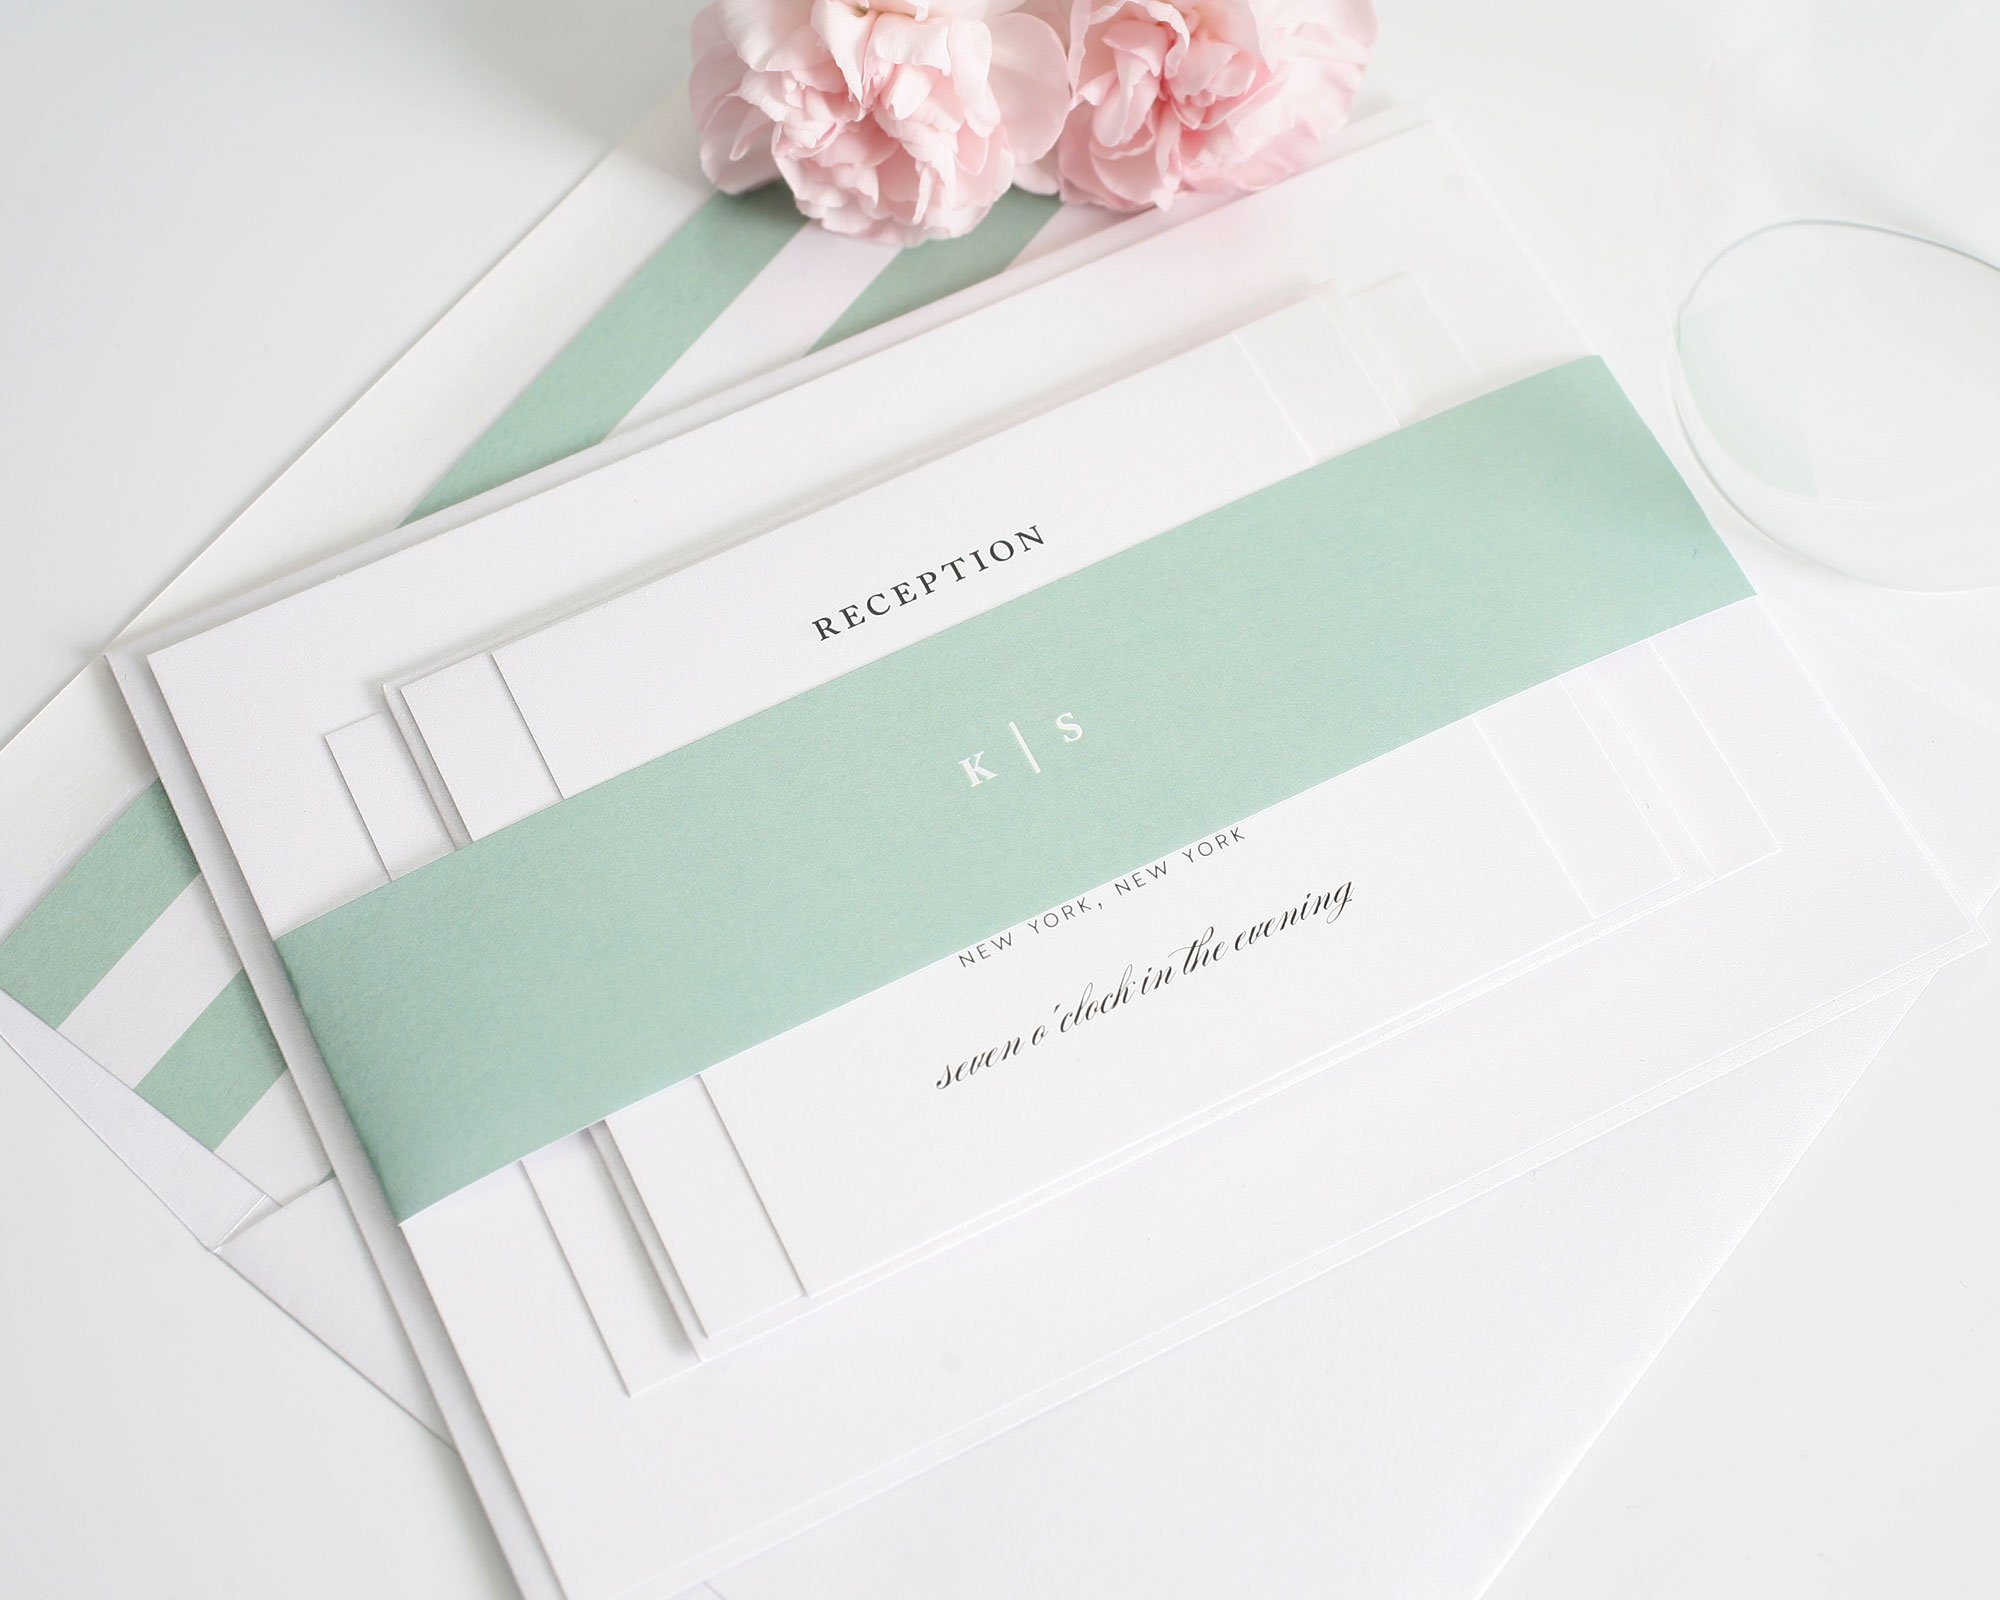 Simple wedding invitations with mint green stripes